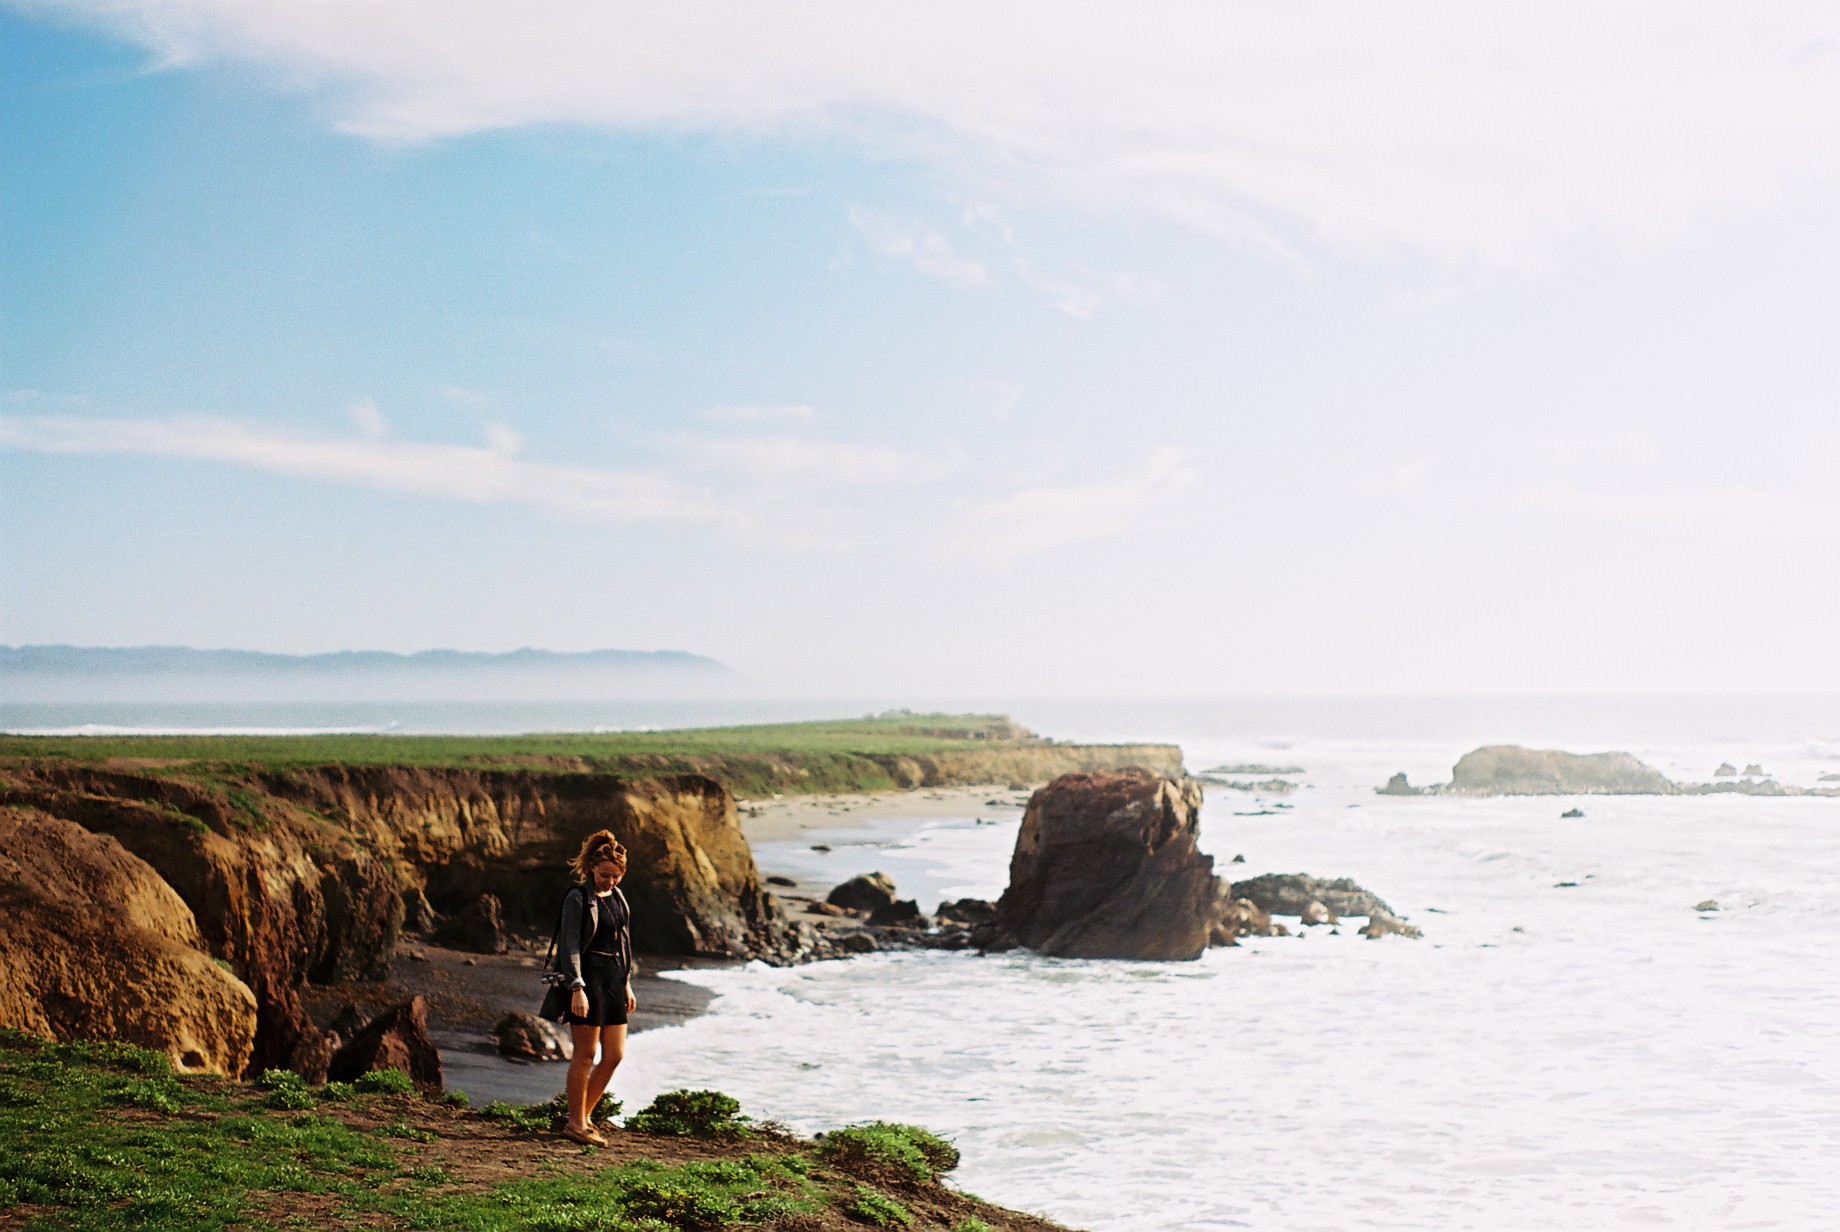 Highway 1 Coastline Portrait Analogue Travel Journal